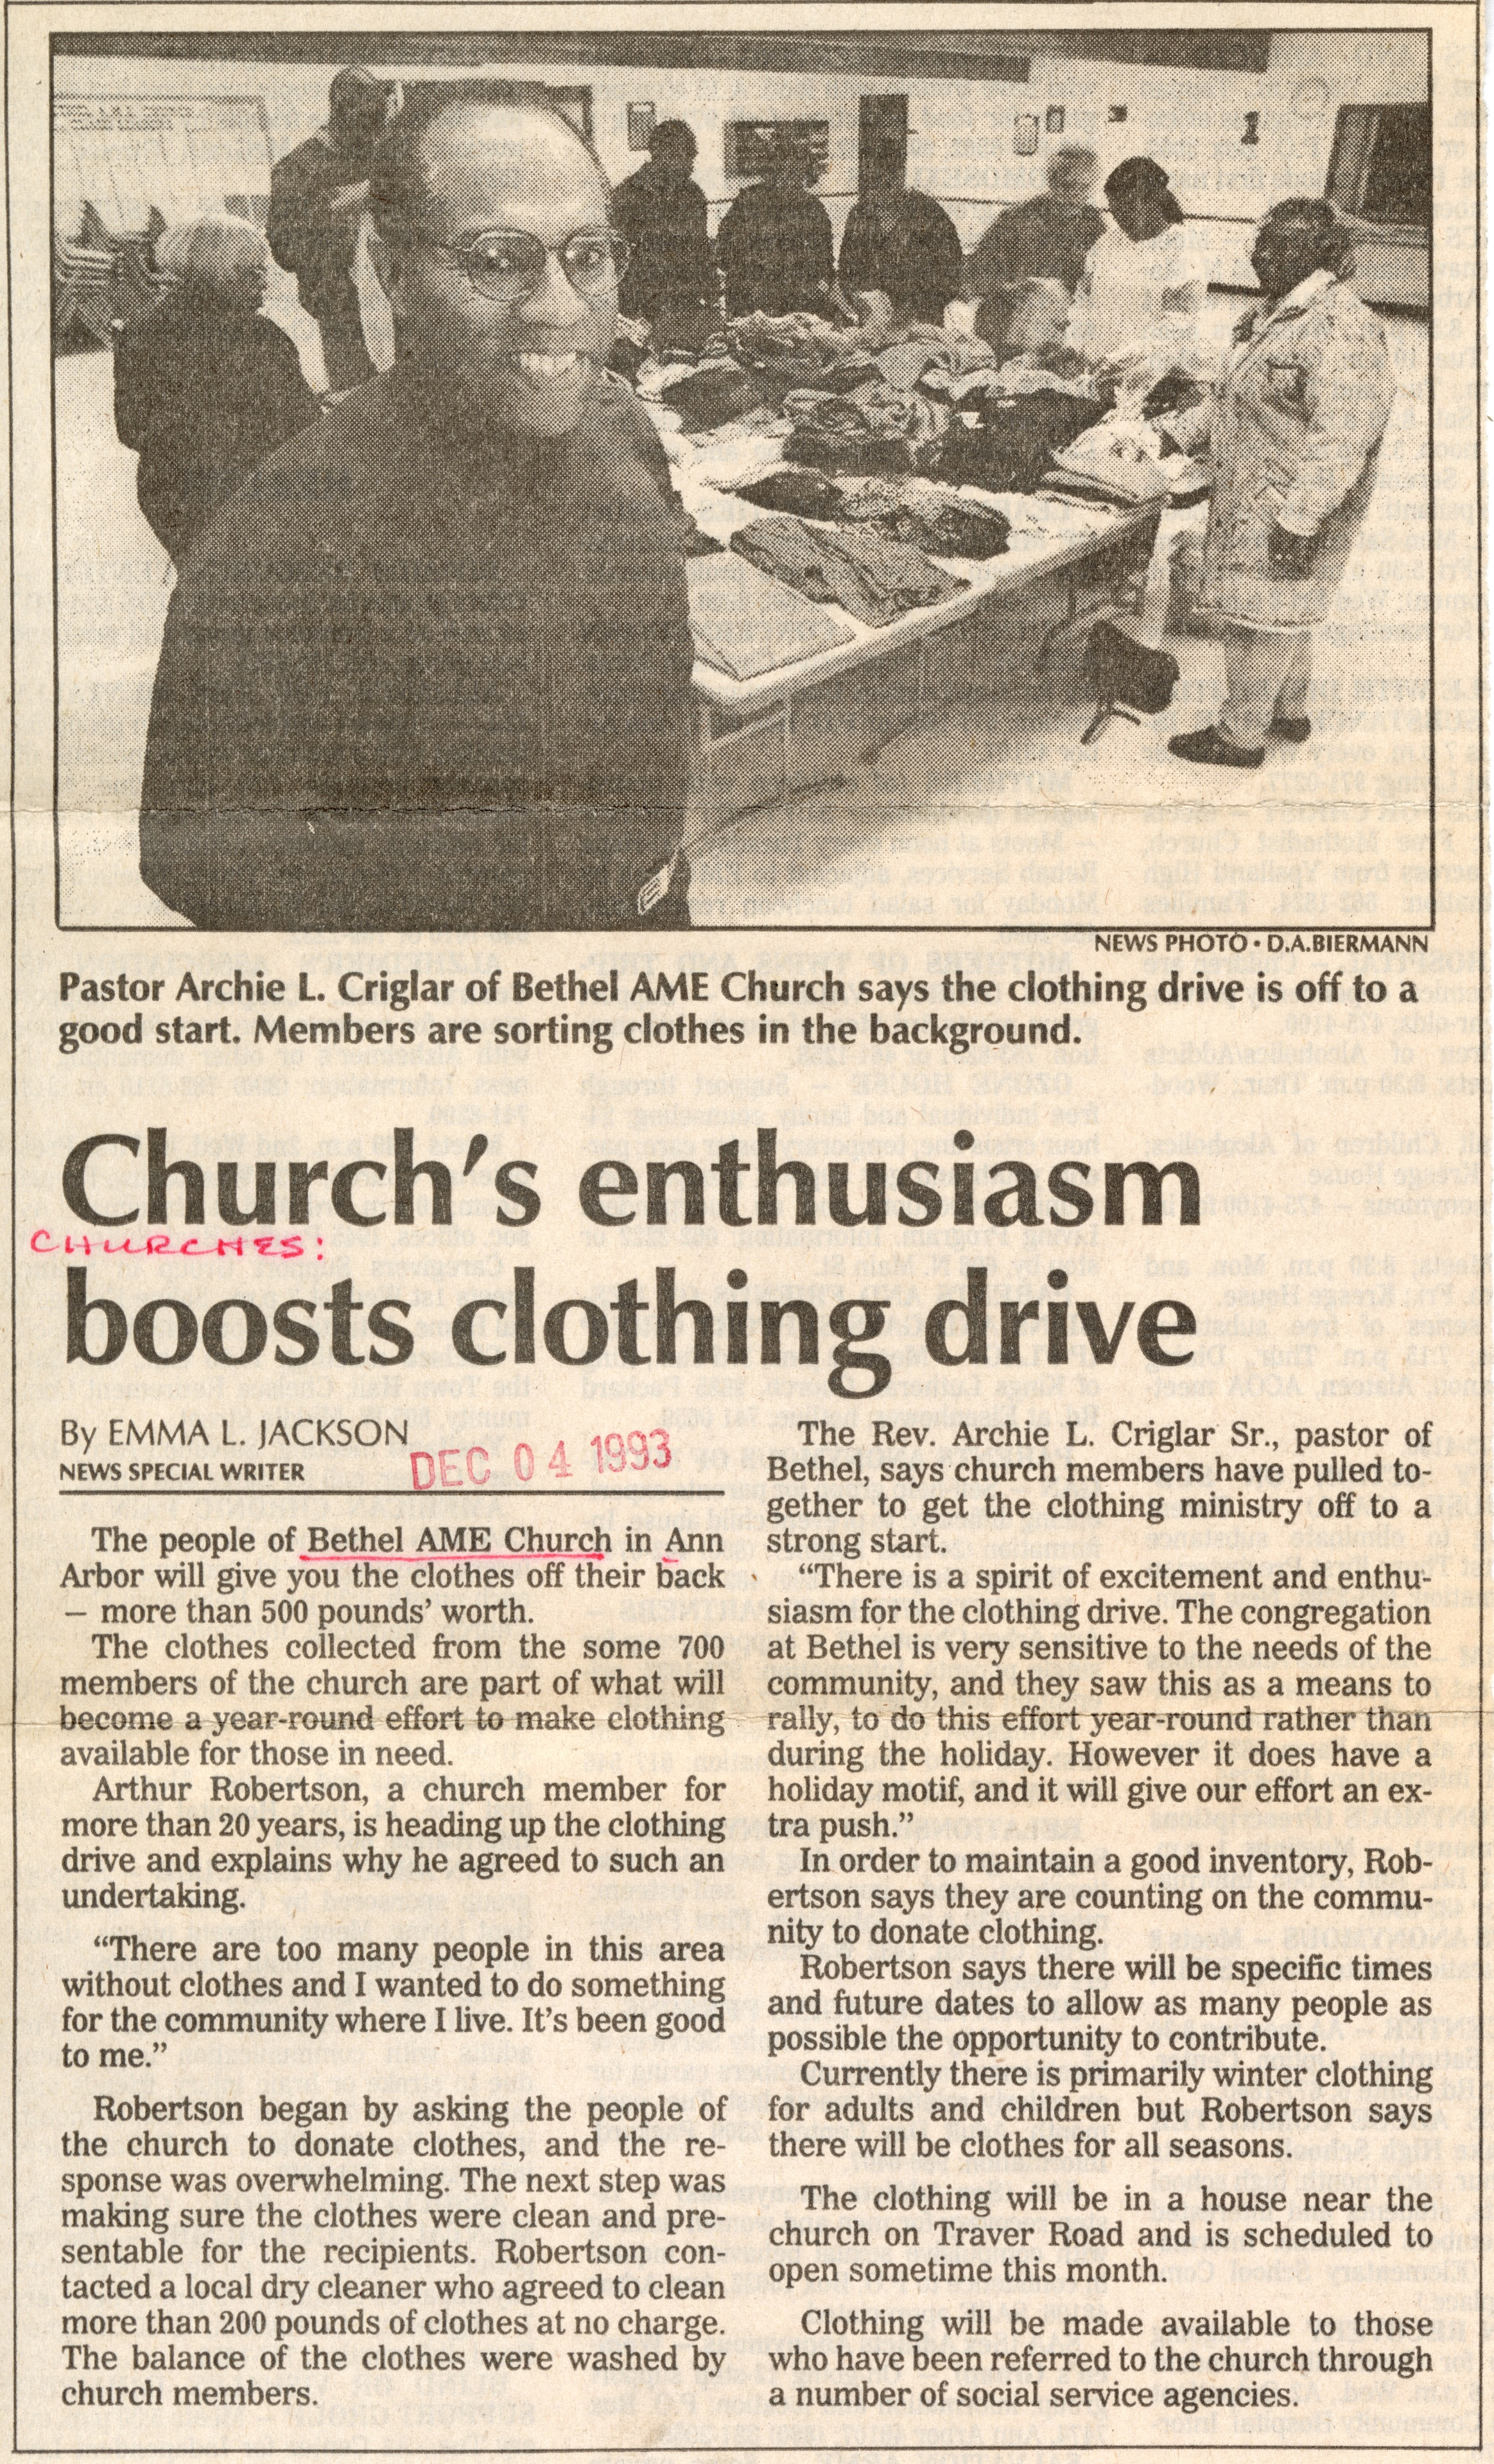 Church's enthusiasm boosts clothing drive image